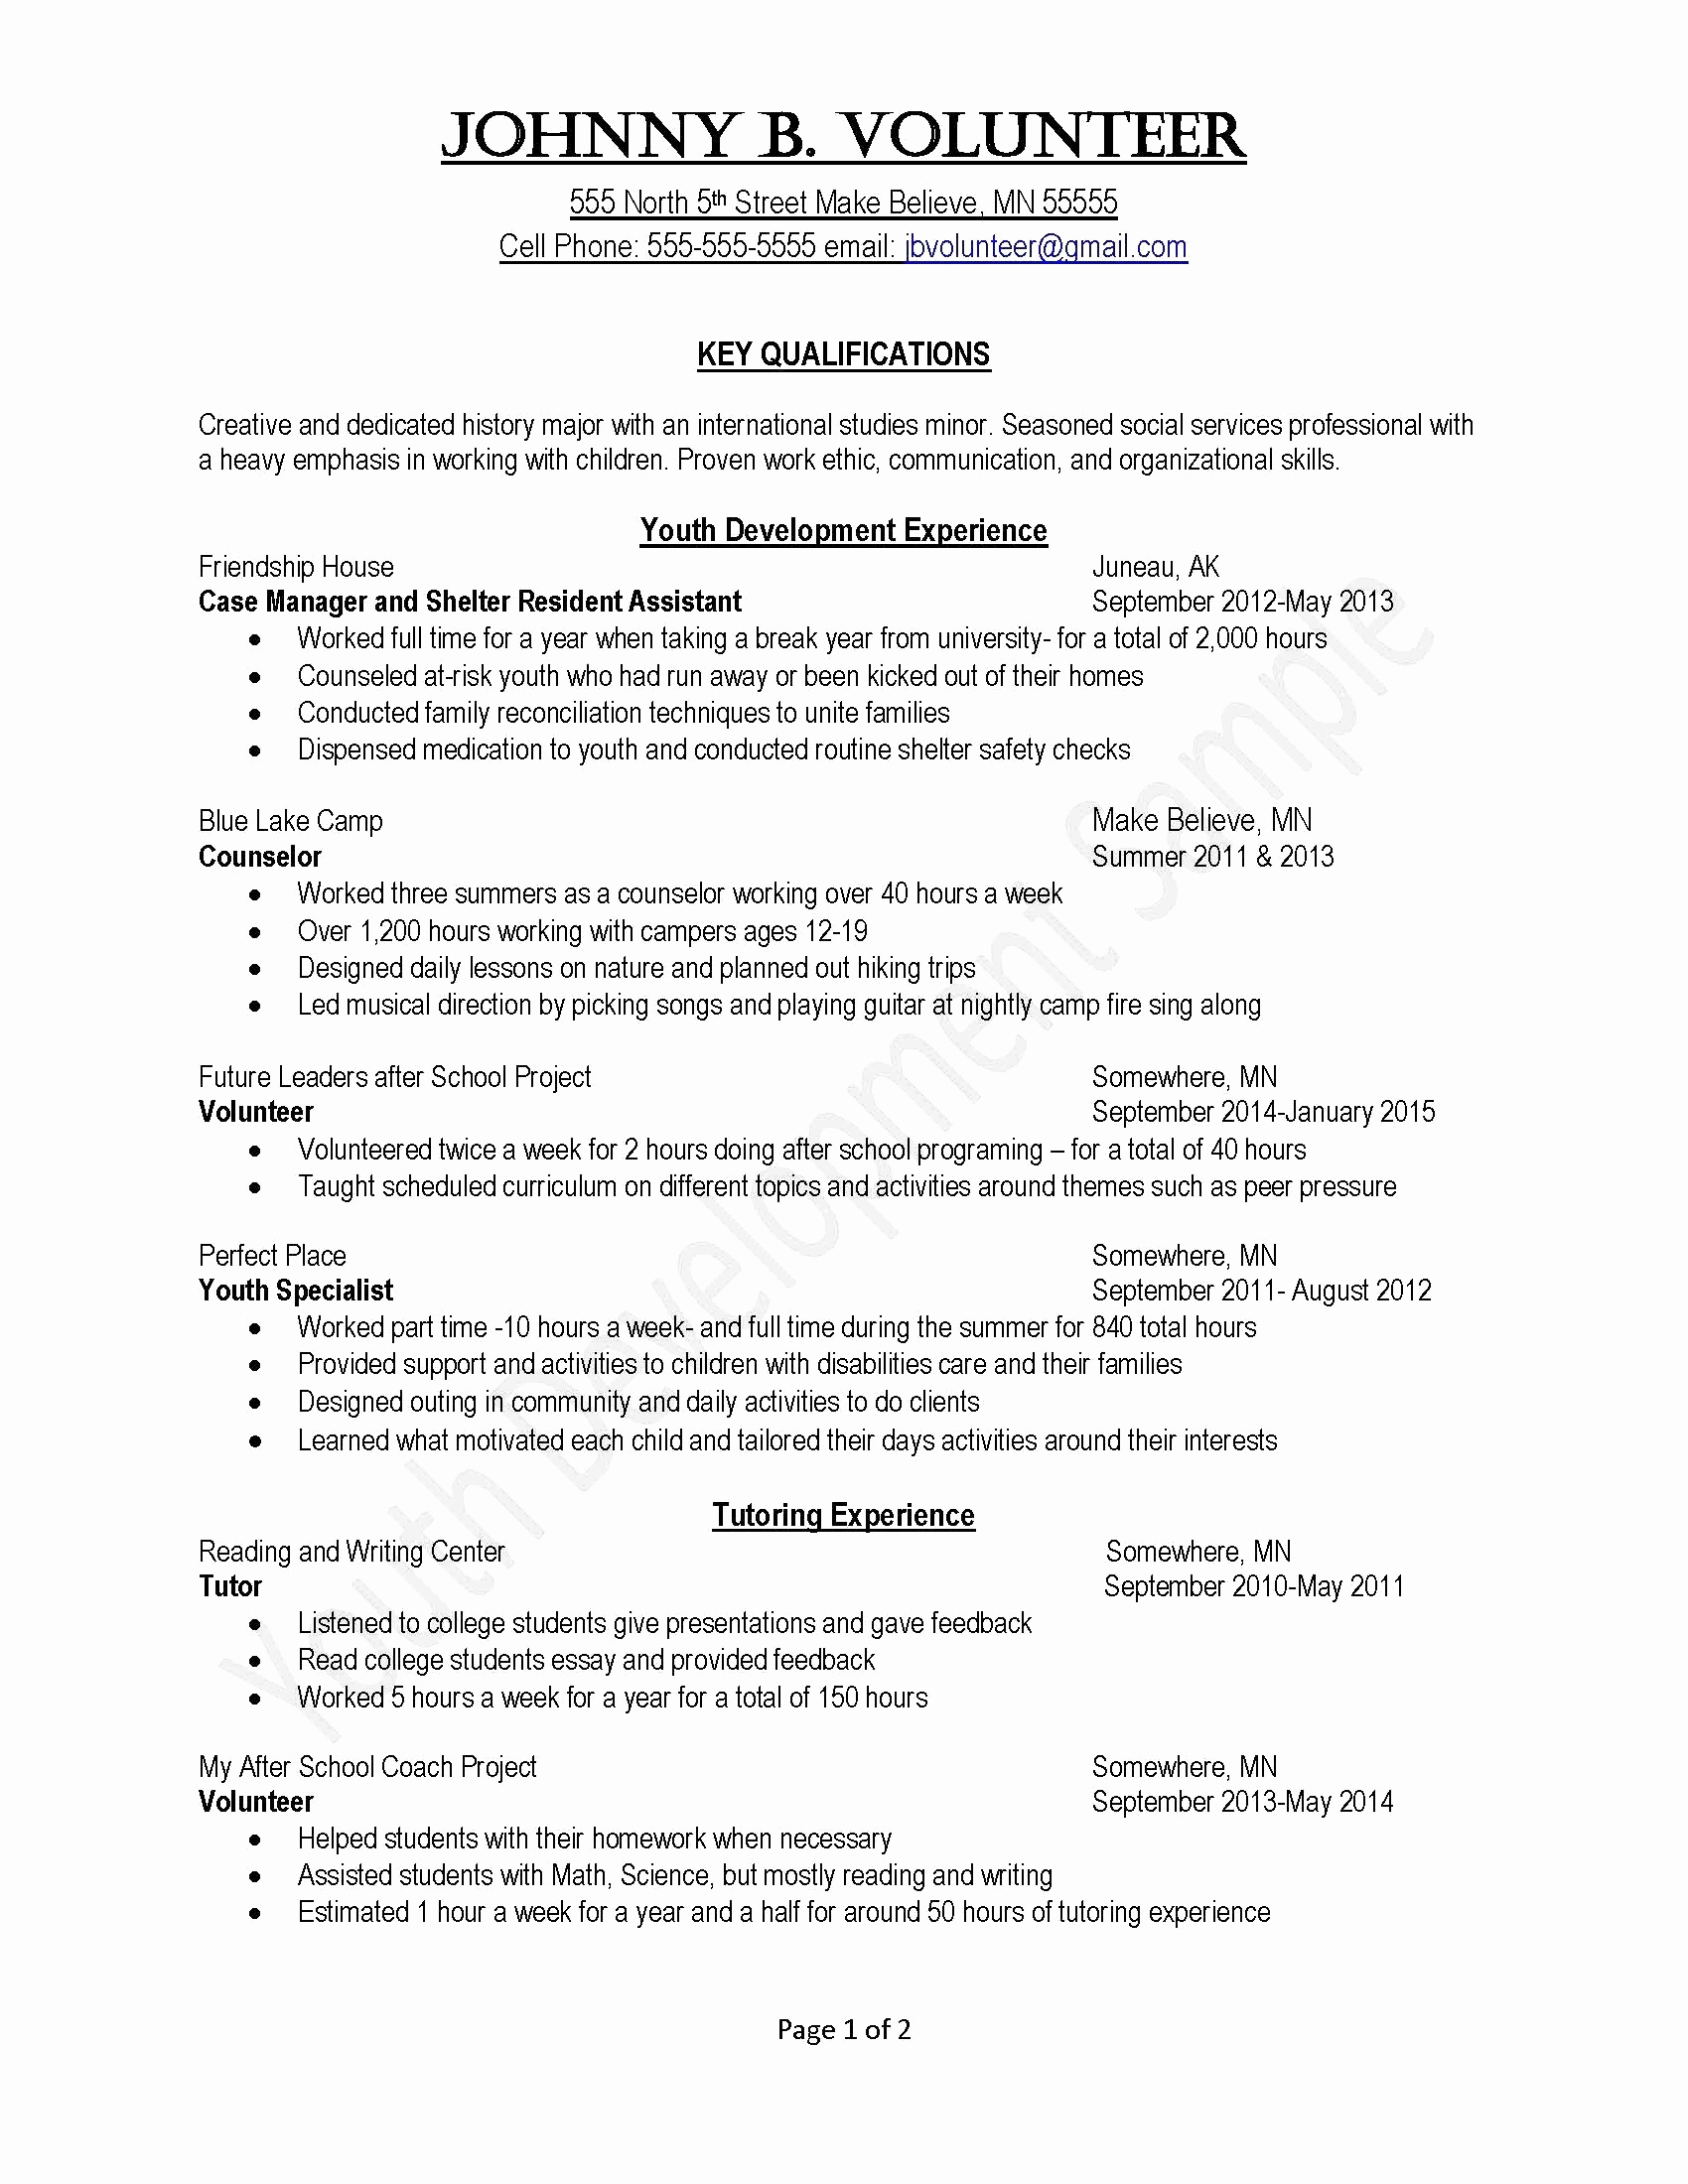 Creative Cover Letter Template - Good Cover Letters for Jobs Unique Simple Cover Letter Template